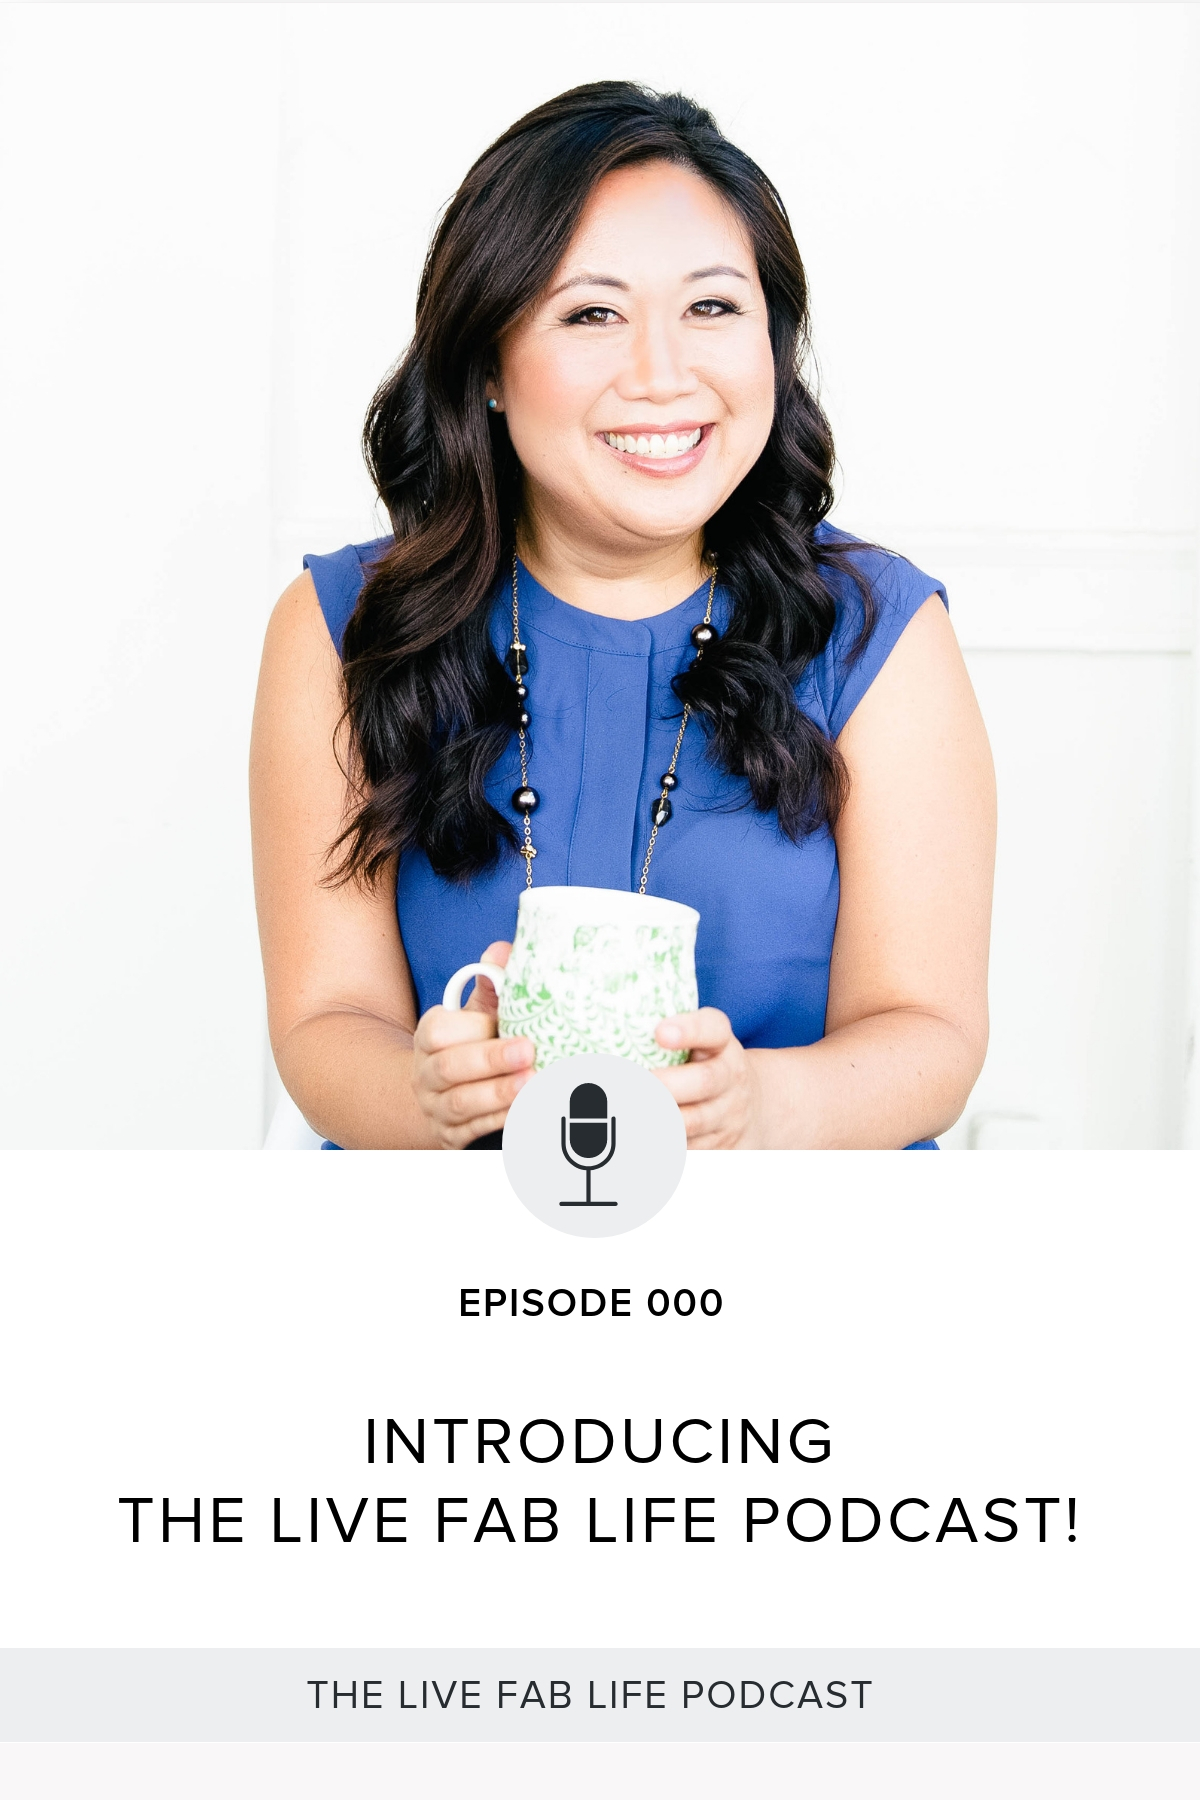 Episode 000: Launching the Live FAB Life Podcast